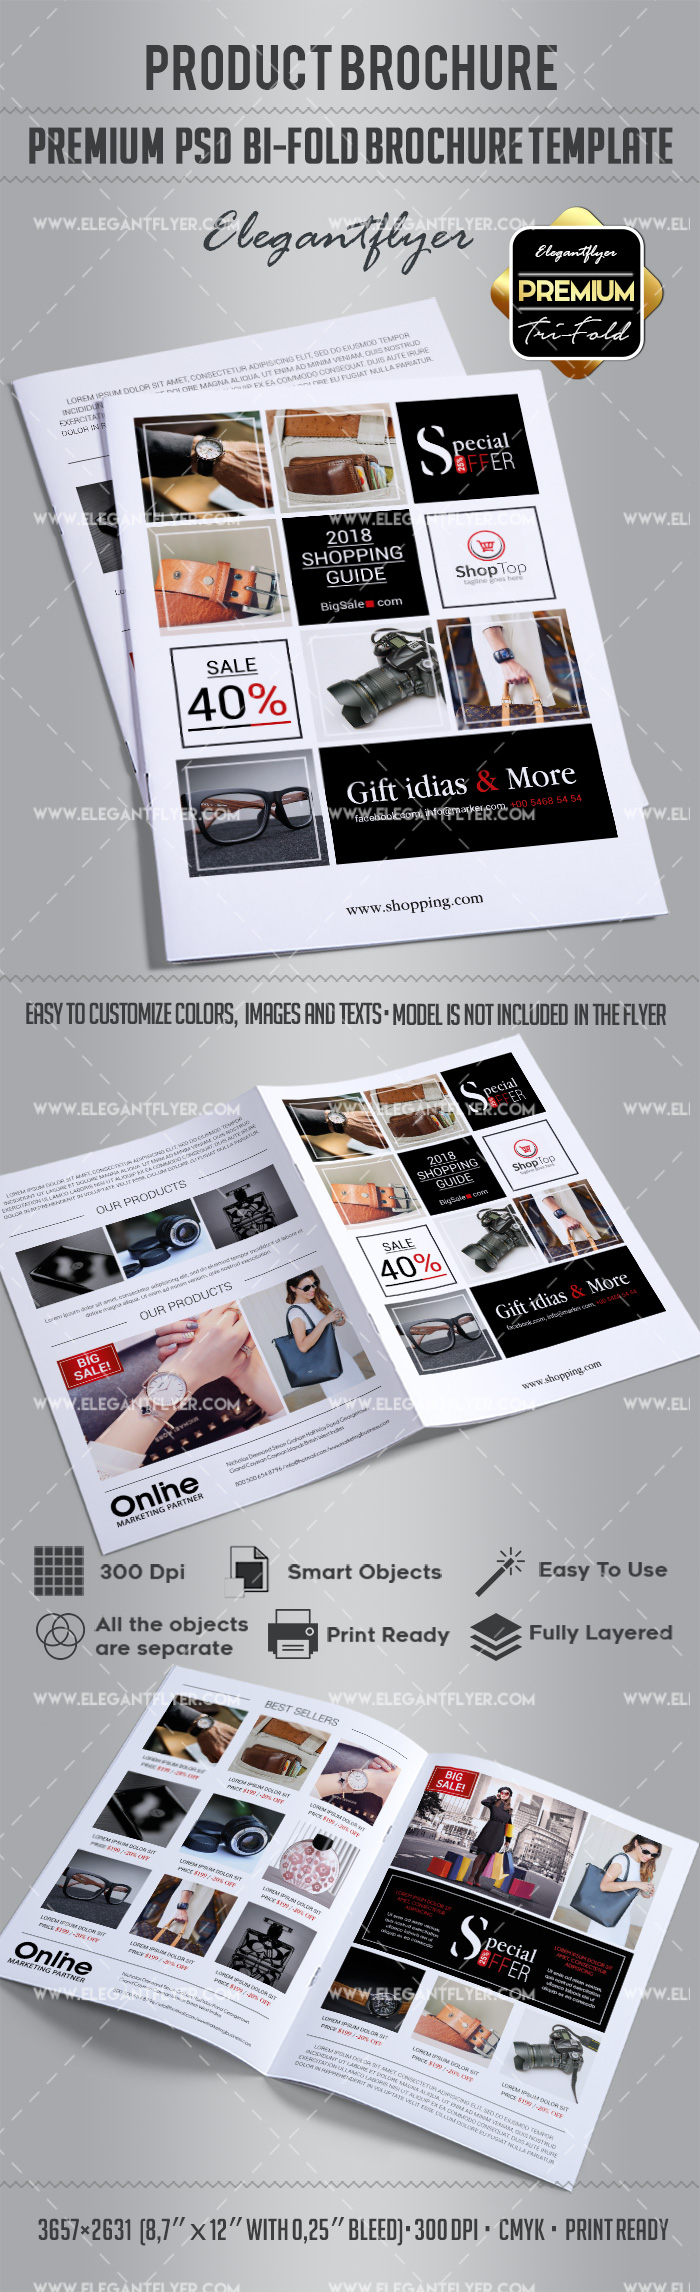 Product brochure bi fold template by elegantflyer for Product brochure template